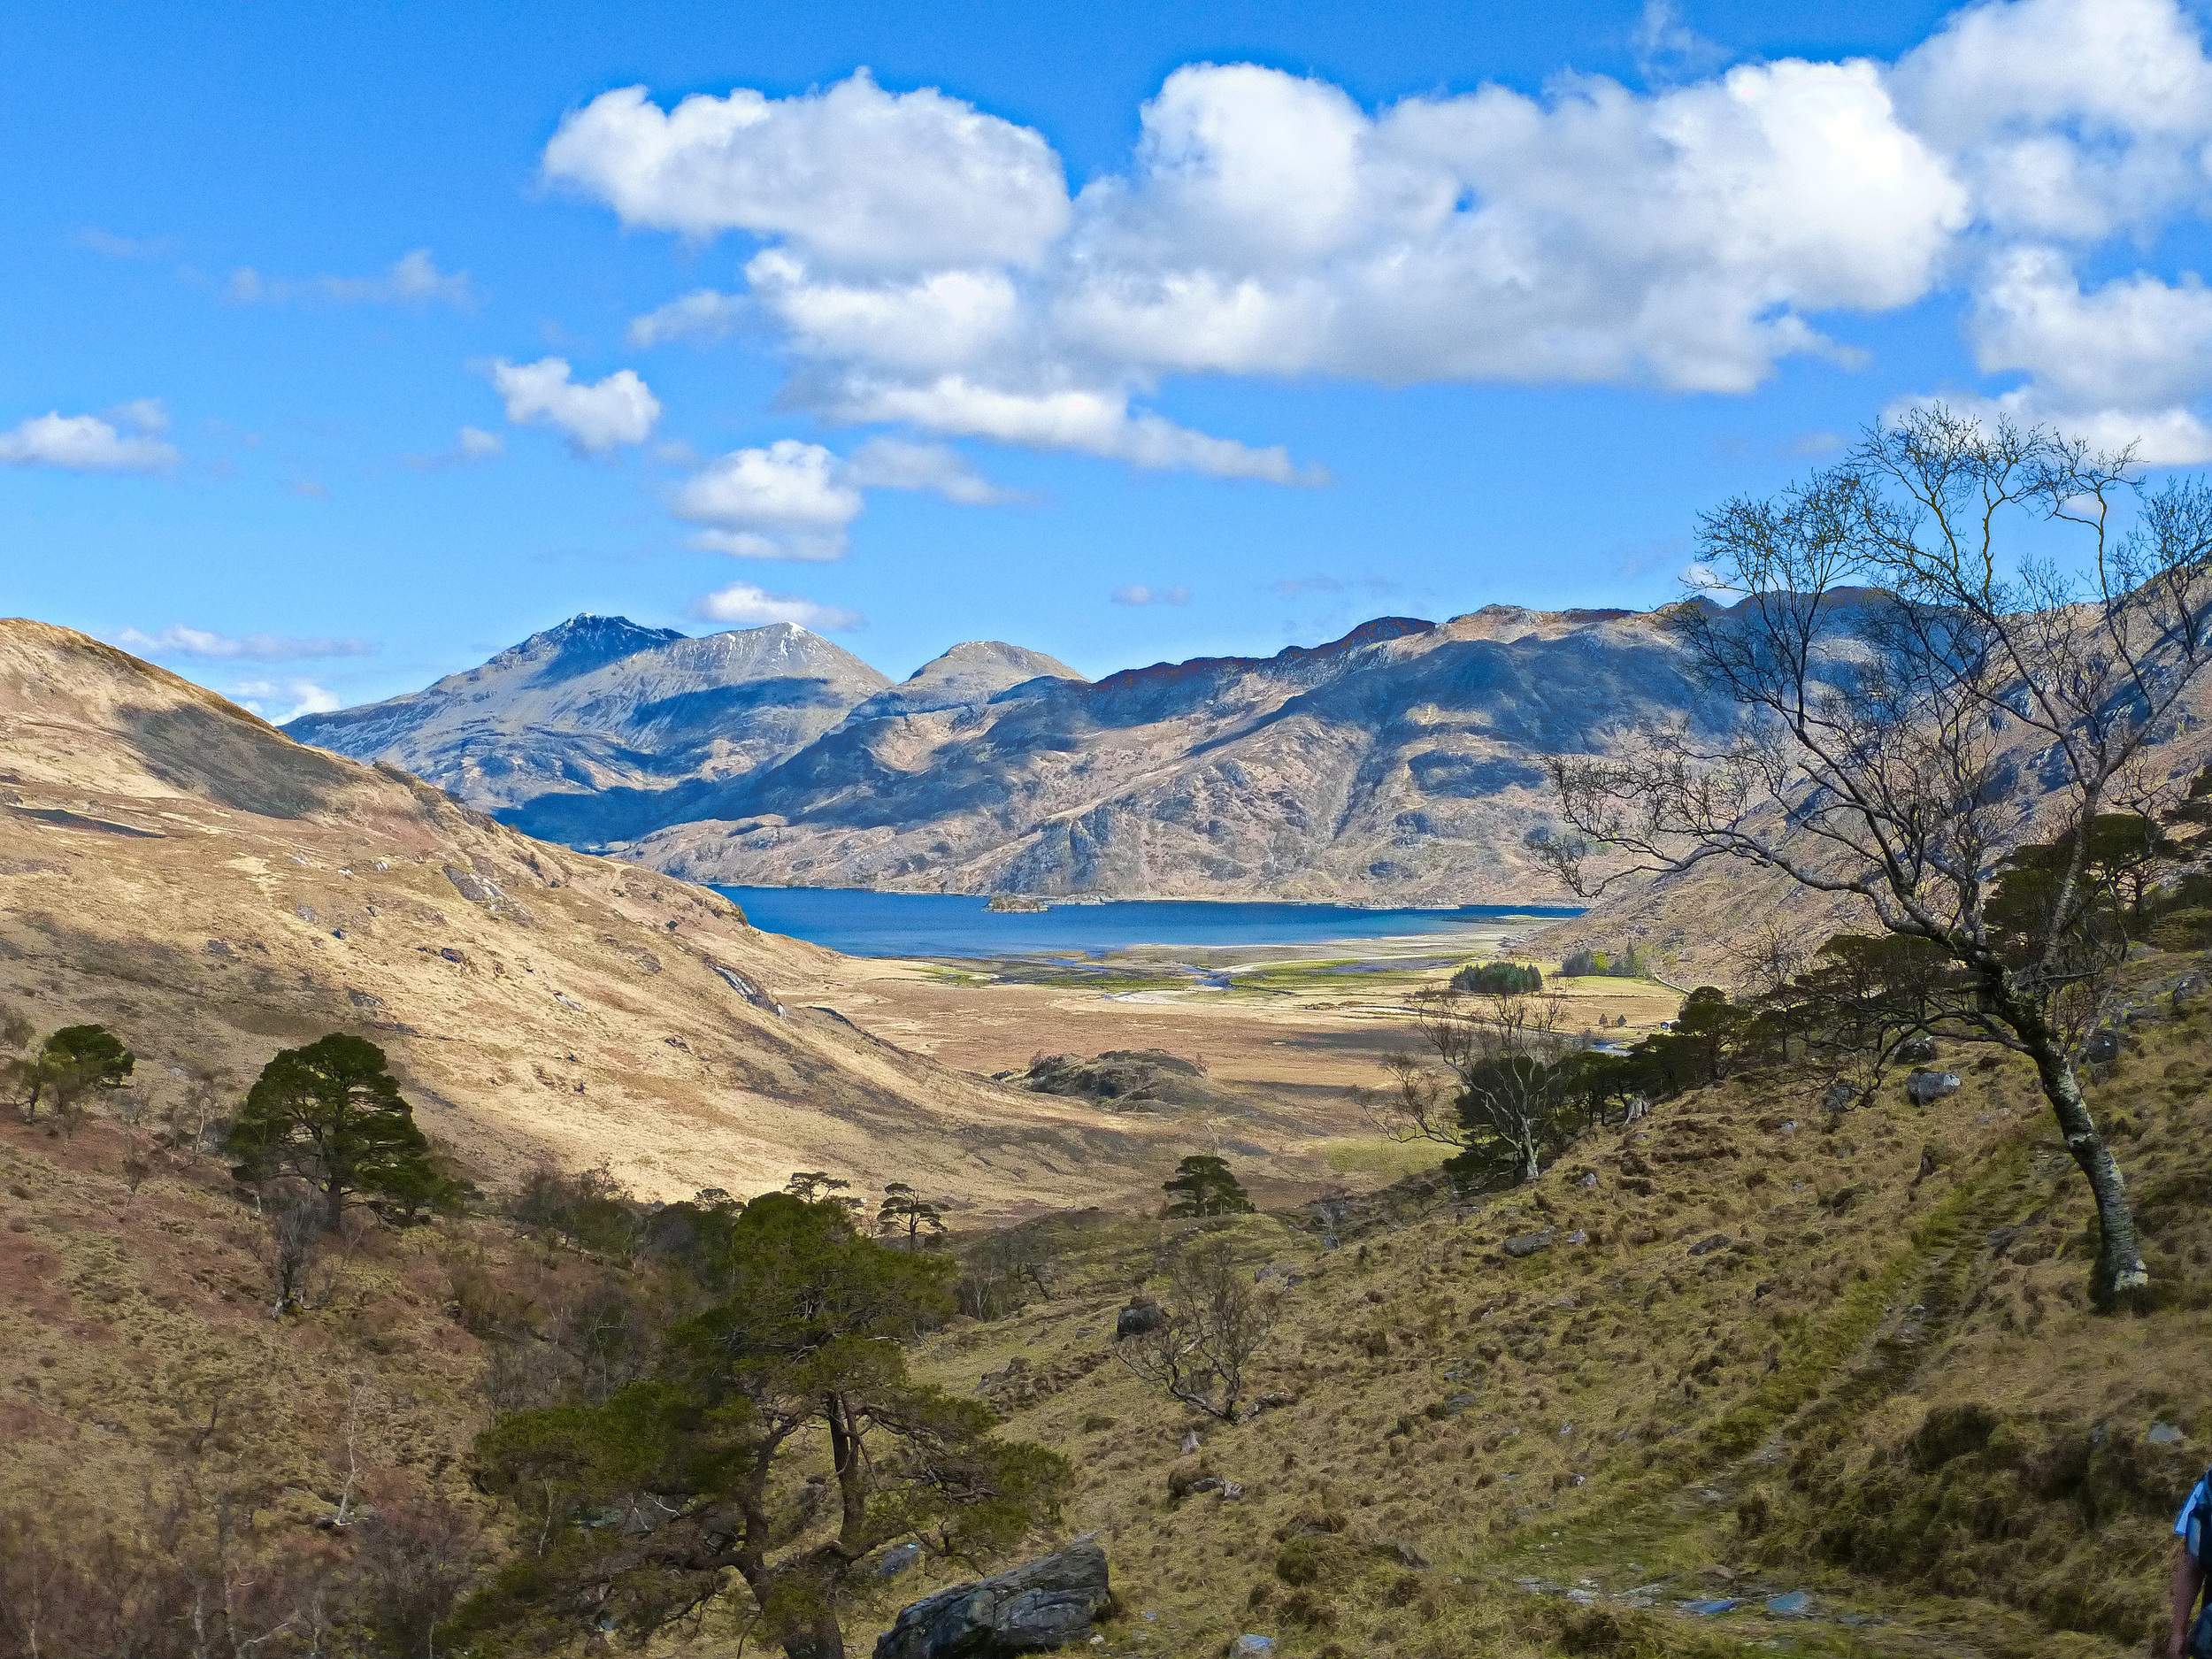 A look north down to Loch Hourn from Gleann Unndalain